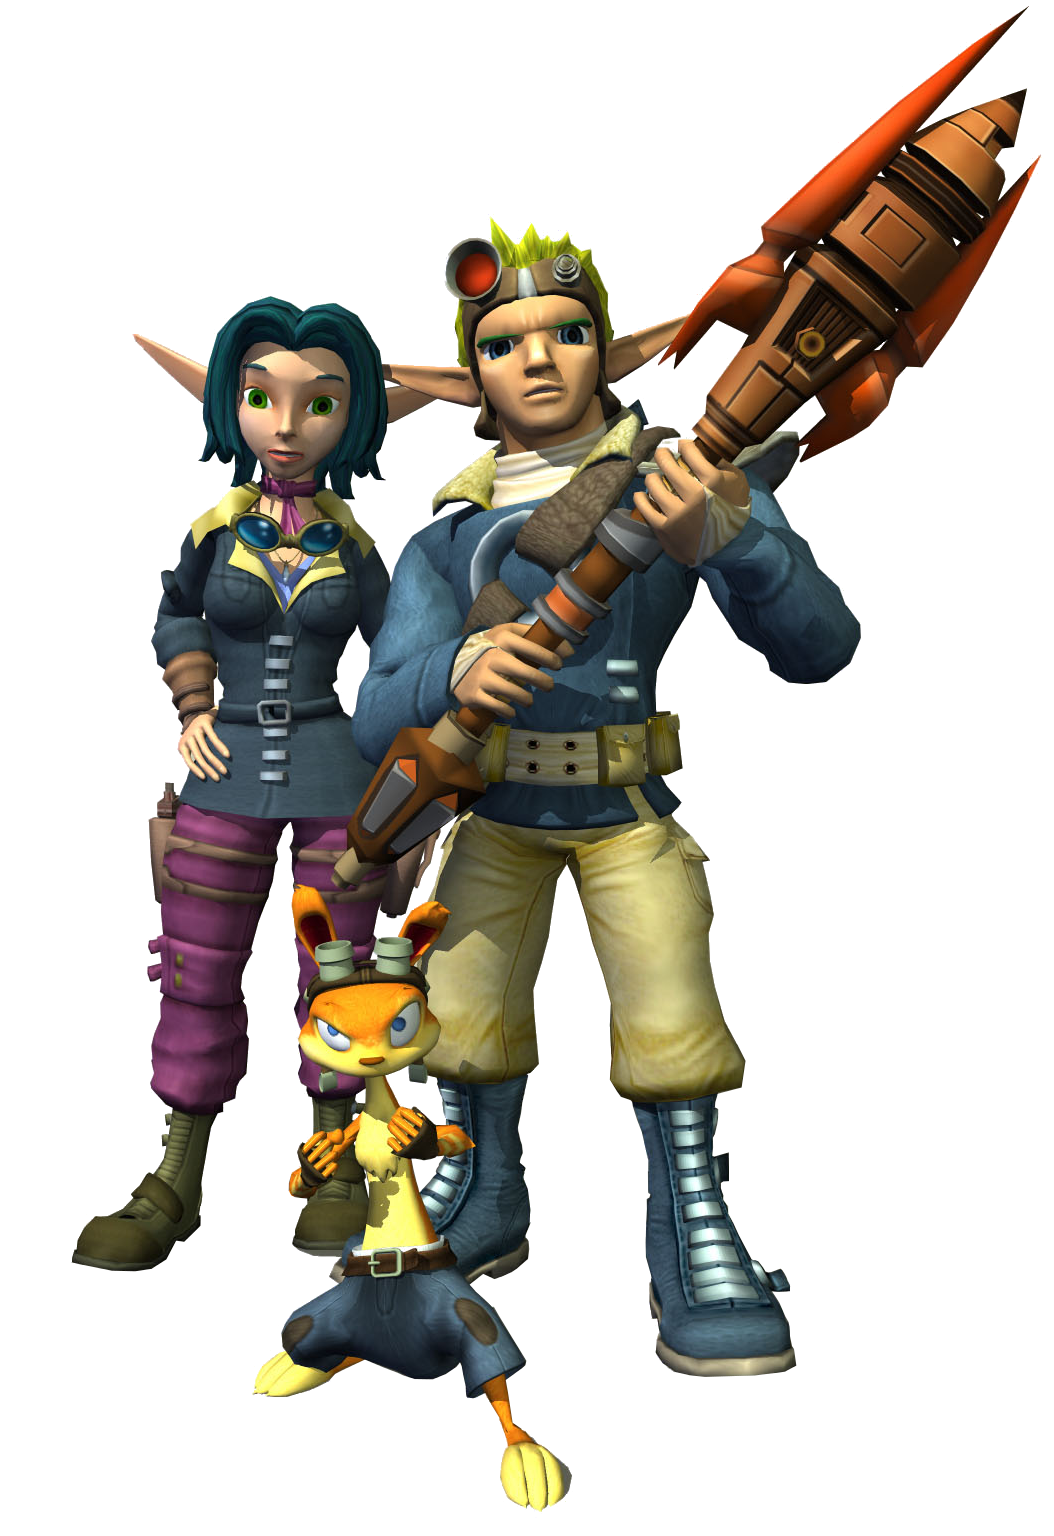 http://vignette3.wikia.nocookie.net/jakanddaxter/images/d/df/Jak,_Daxter_and_Keira_from_TLF_render.png/revision/latest?cb=20150201031818